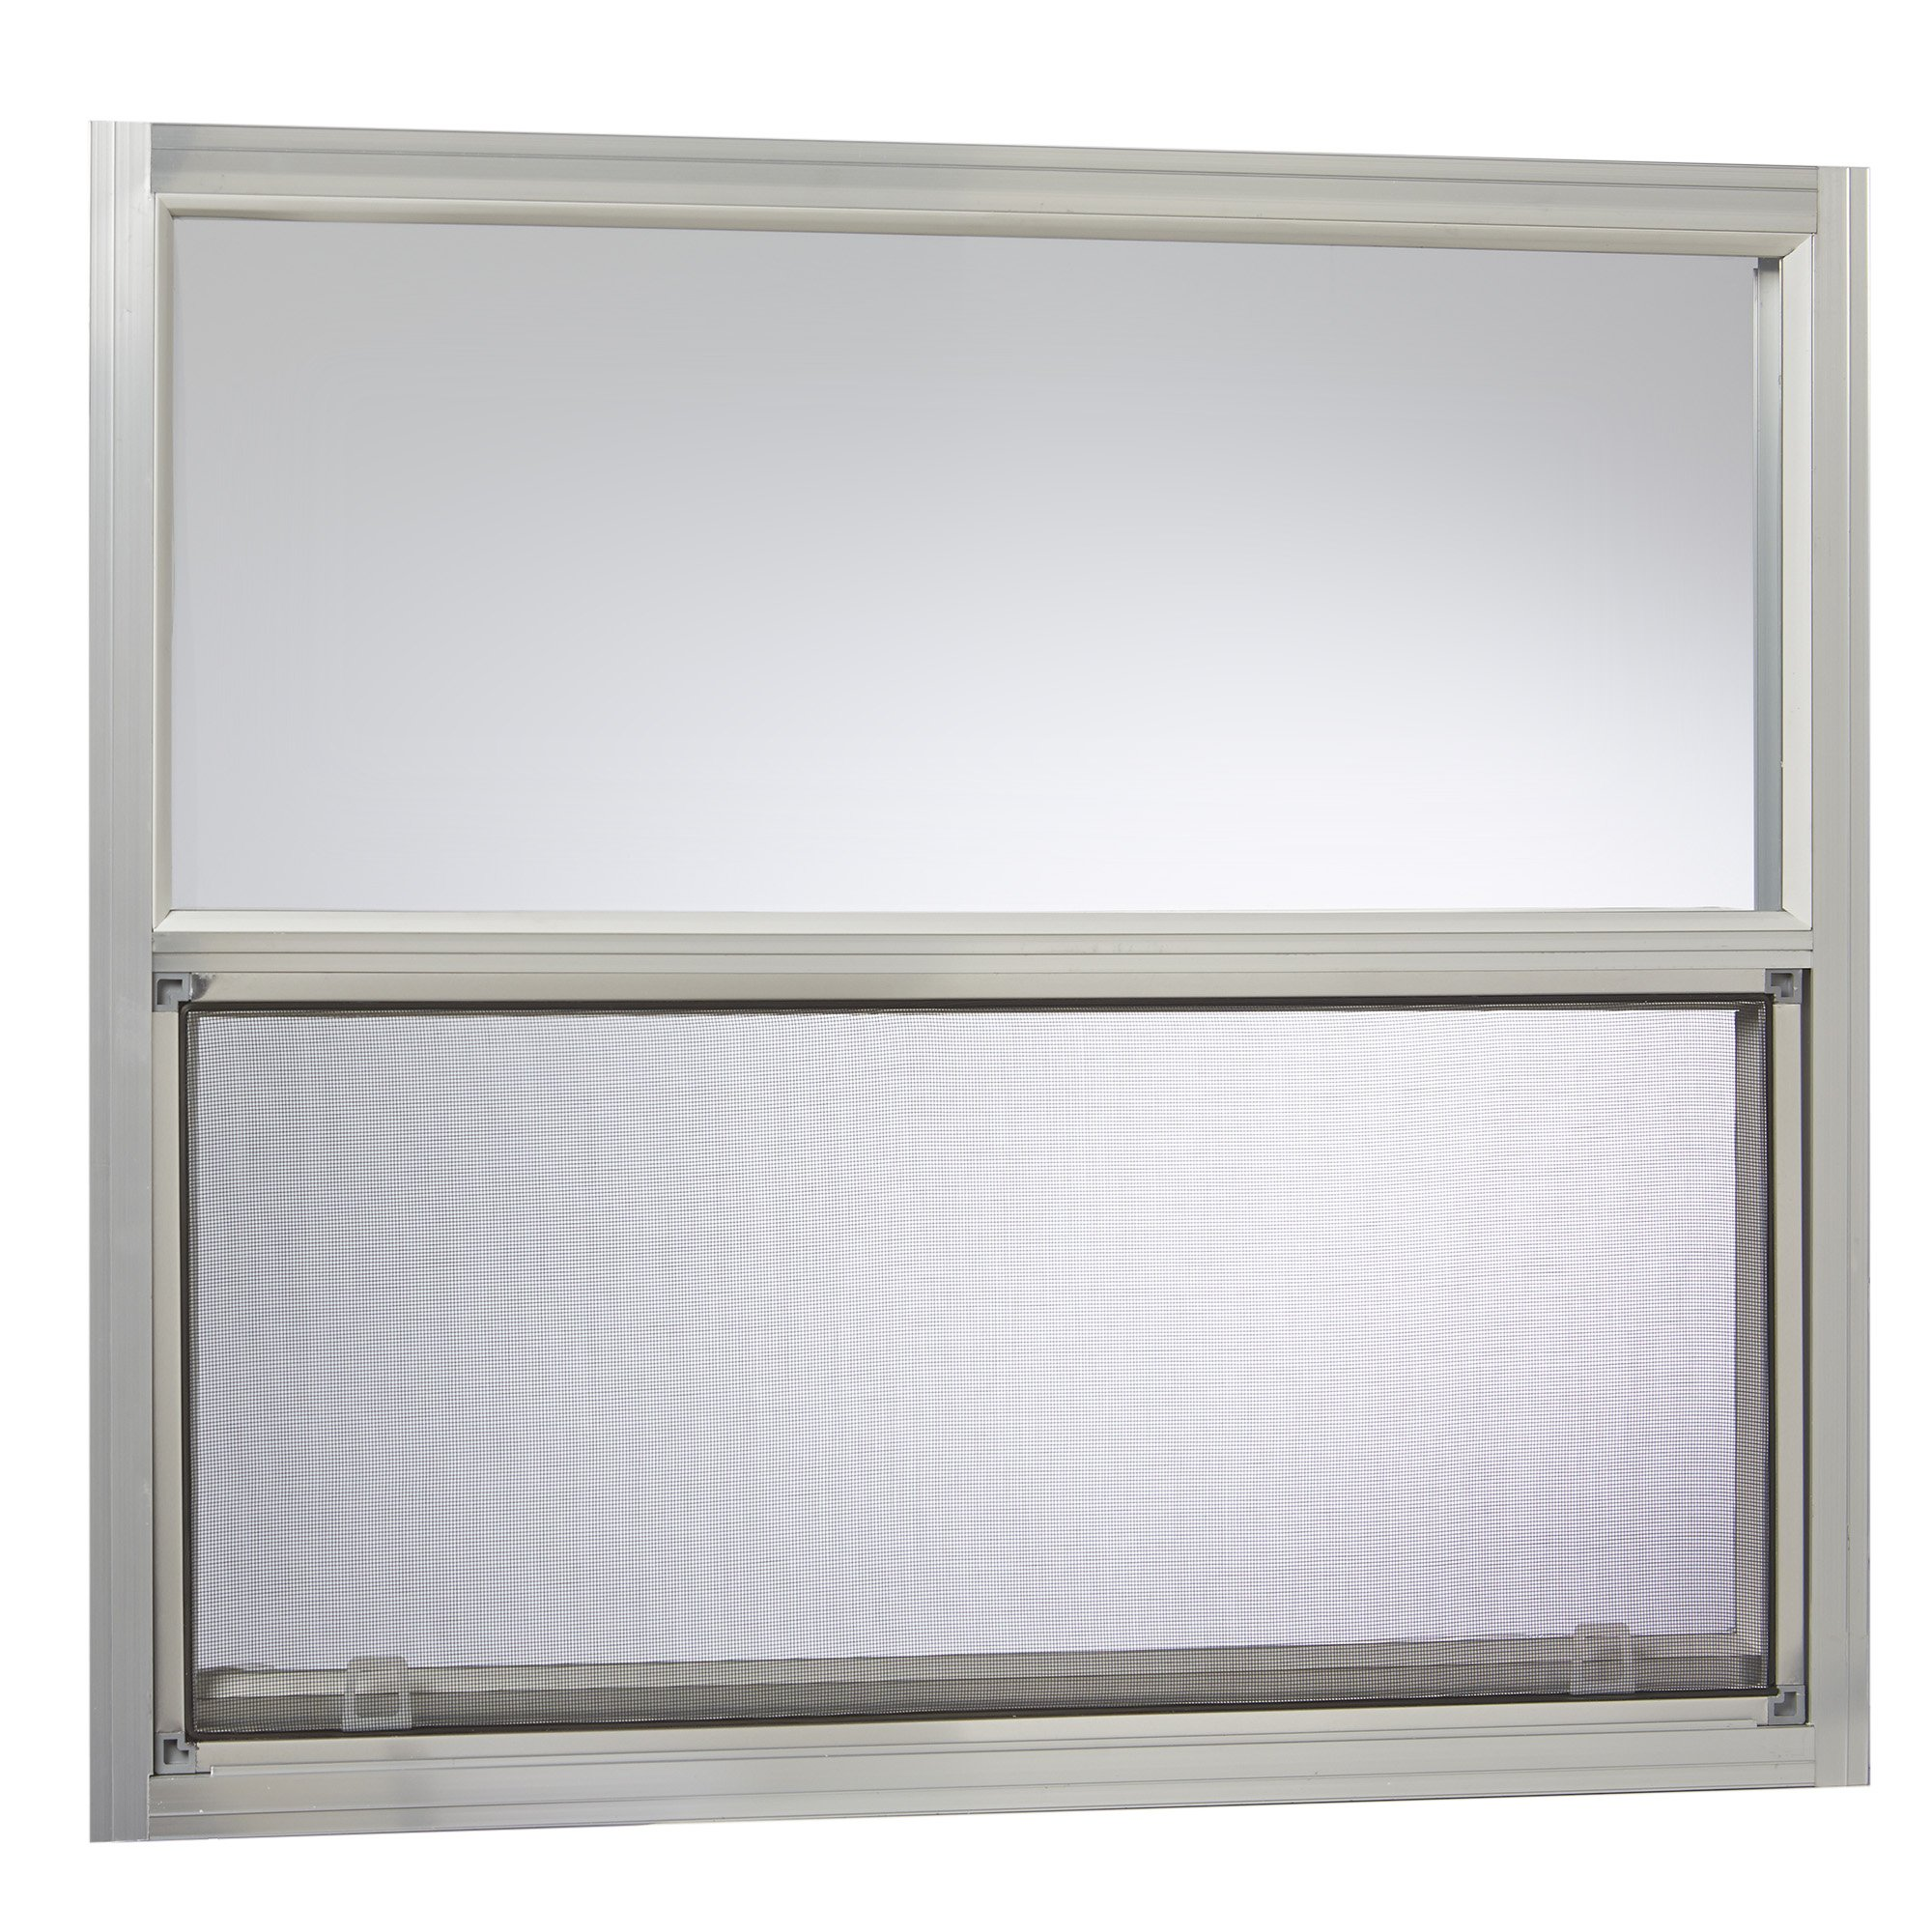 Park Ridge Products AMHMF3027PR Park Ridge Mill Finish 30 in. x 27 in. Aluminum Mobile Home Single Hung Window - Silver by Park Ridge Products